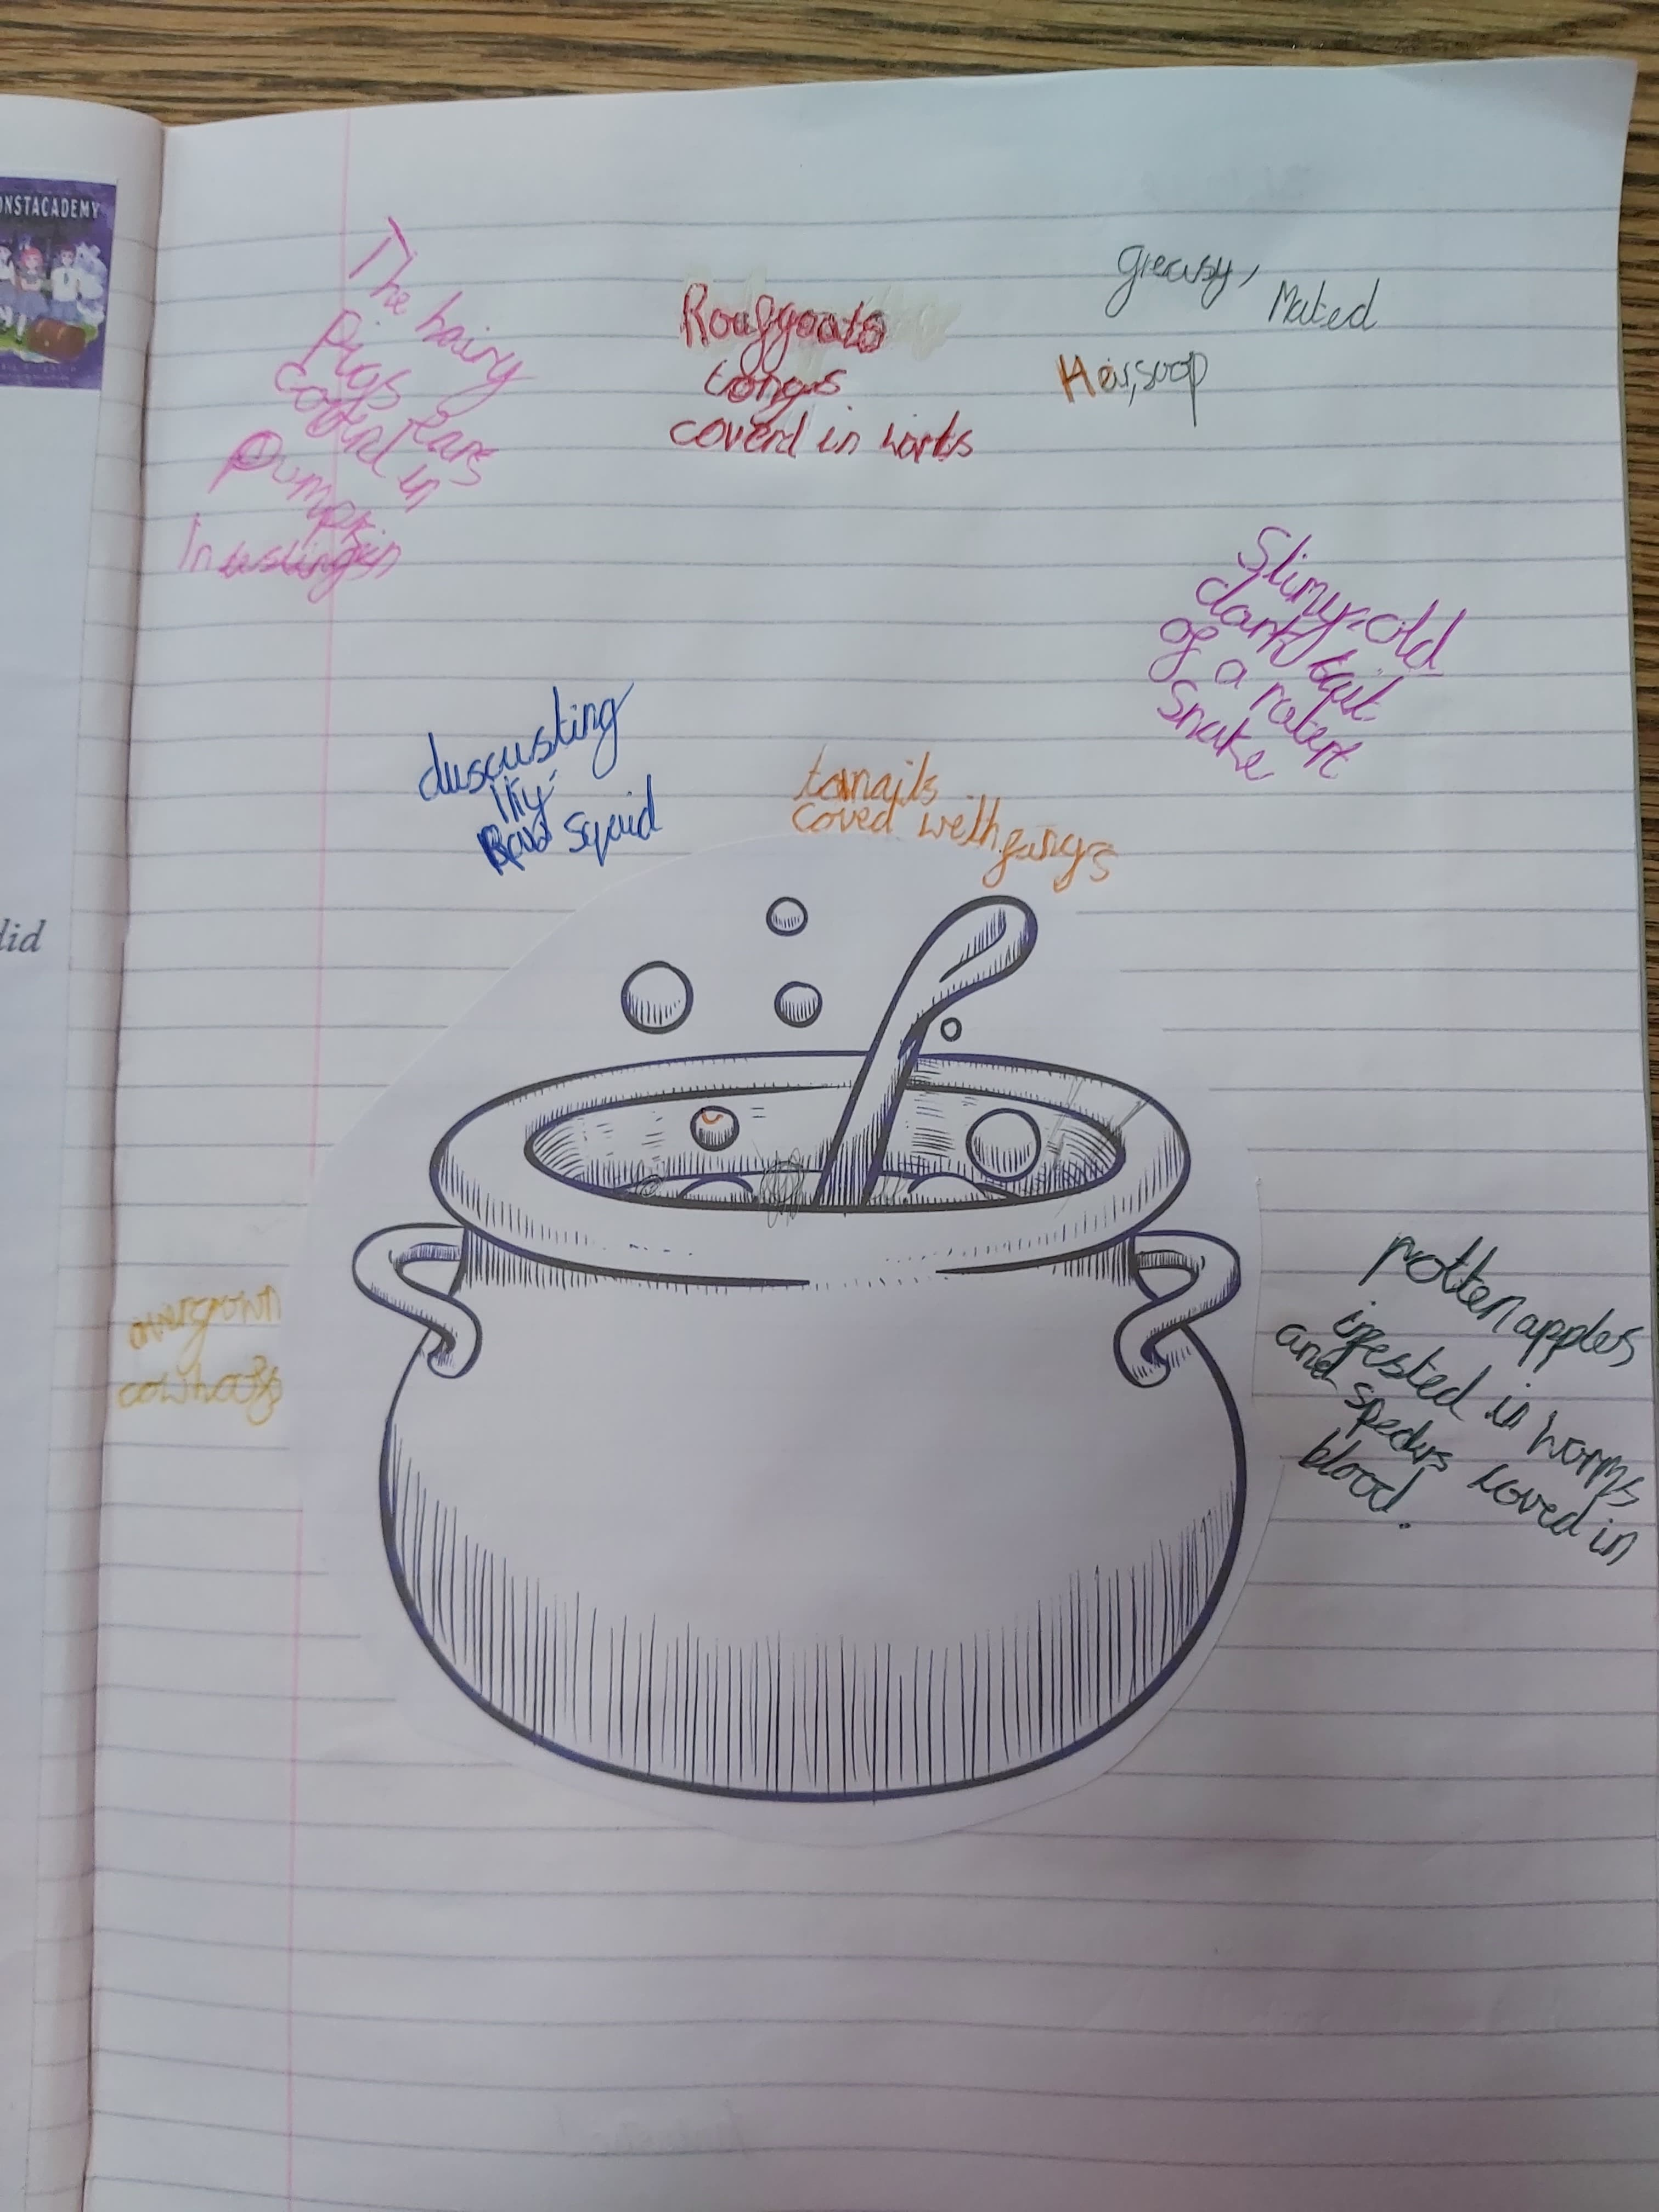 Good use of imaginative writing to list all of the ingredients in a potion